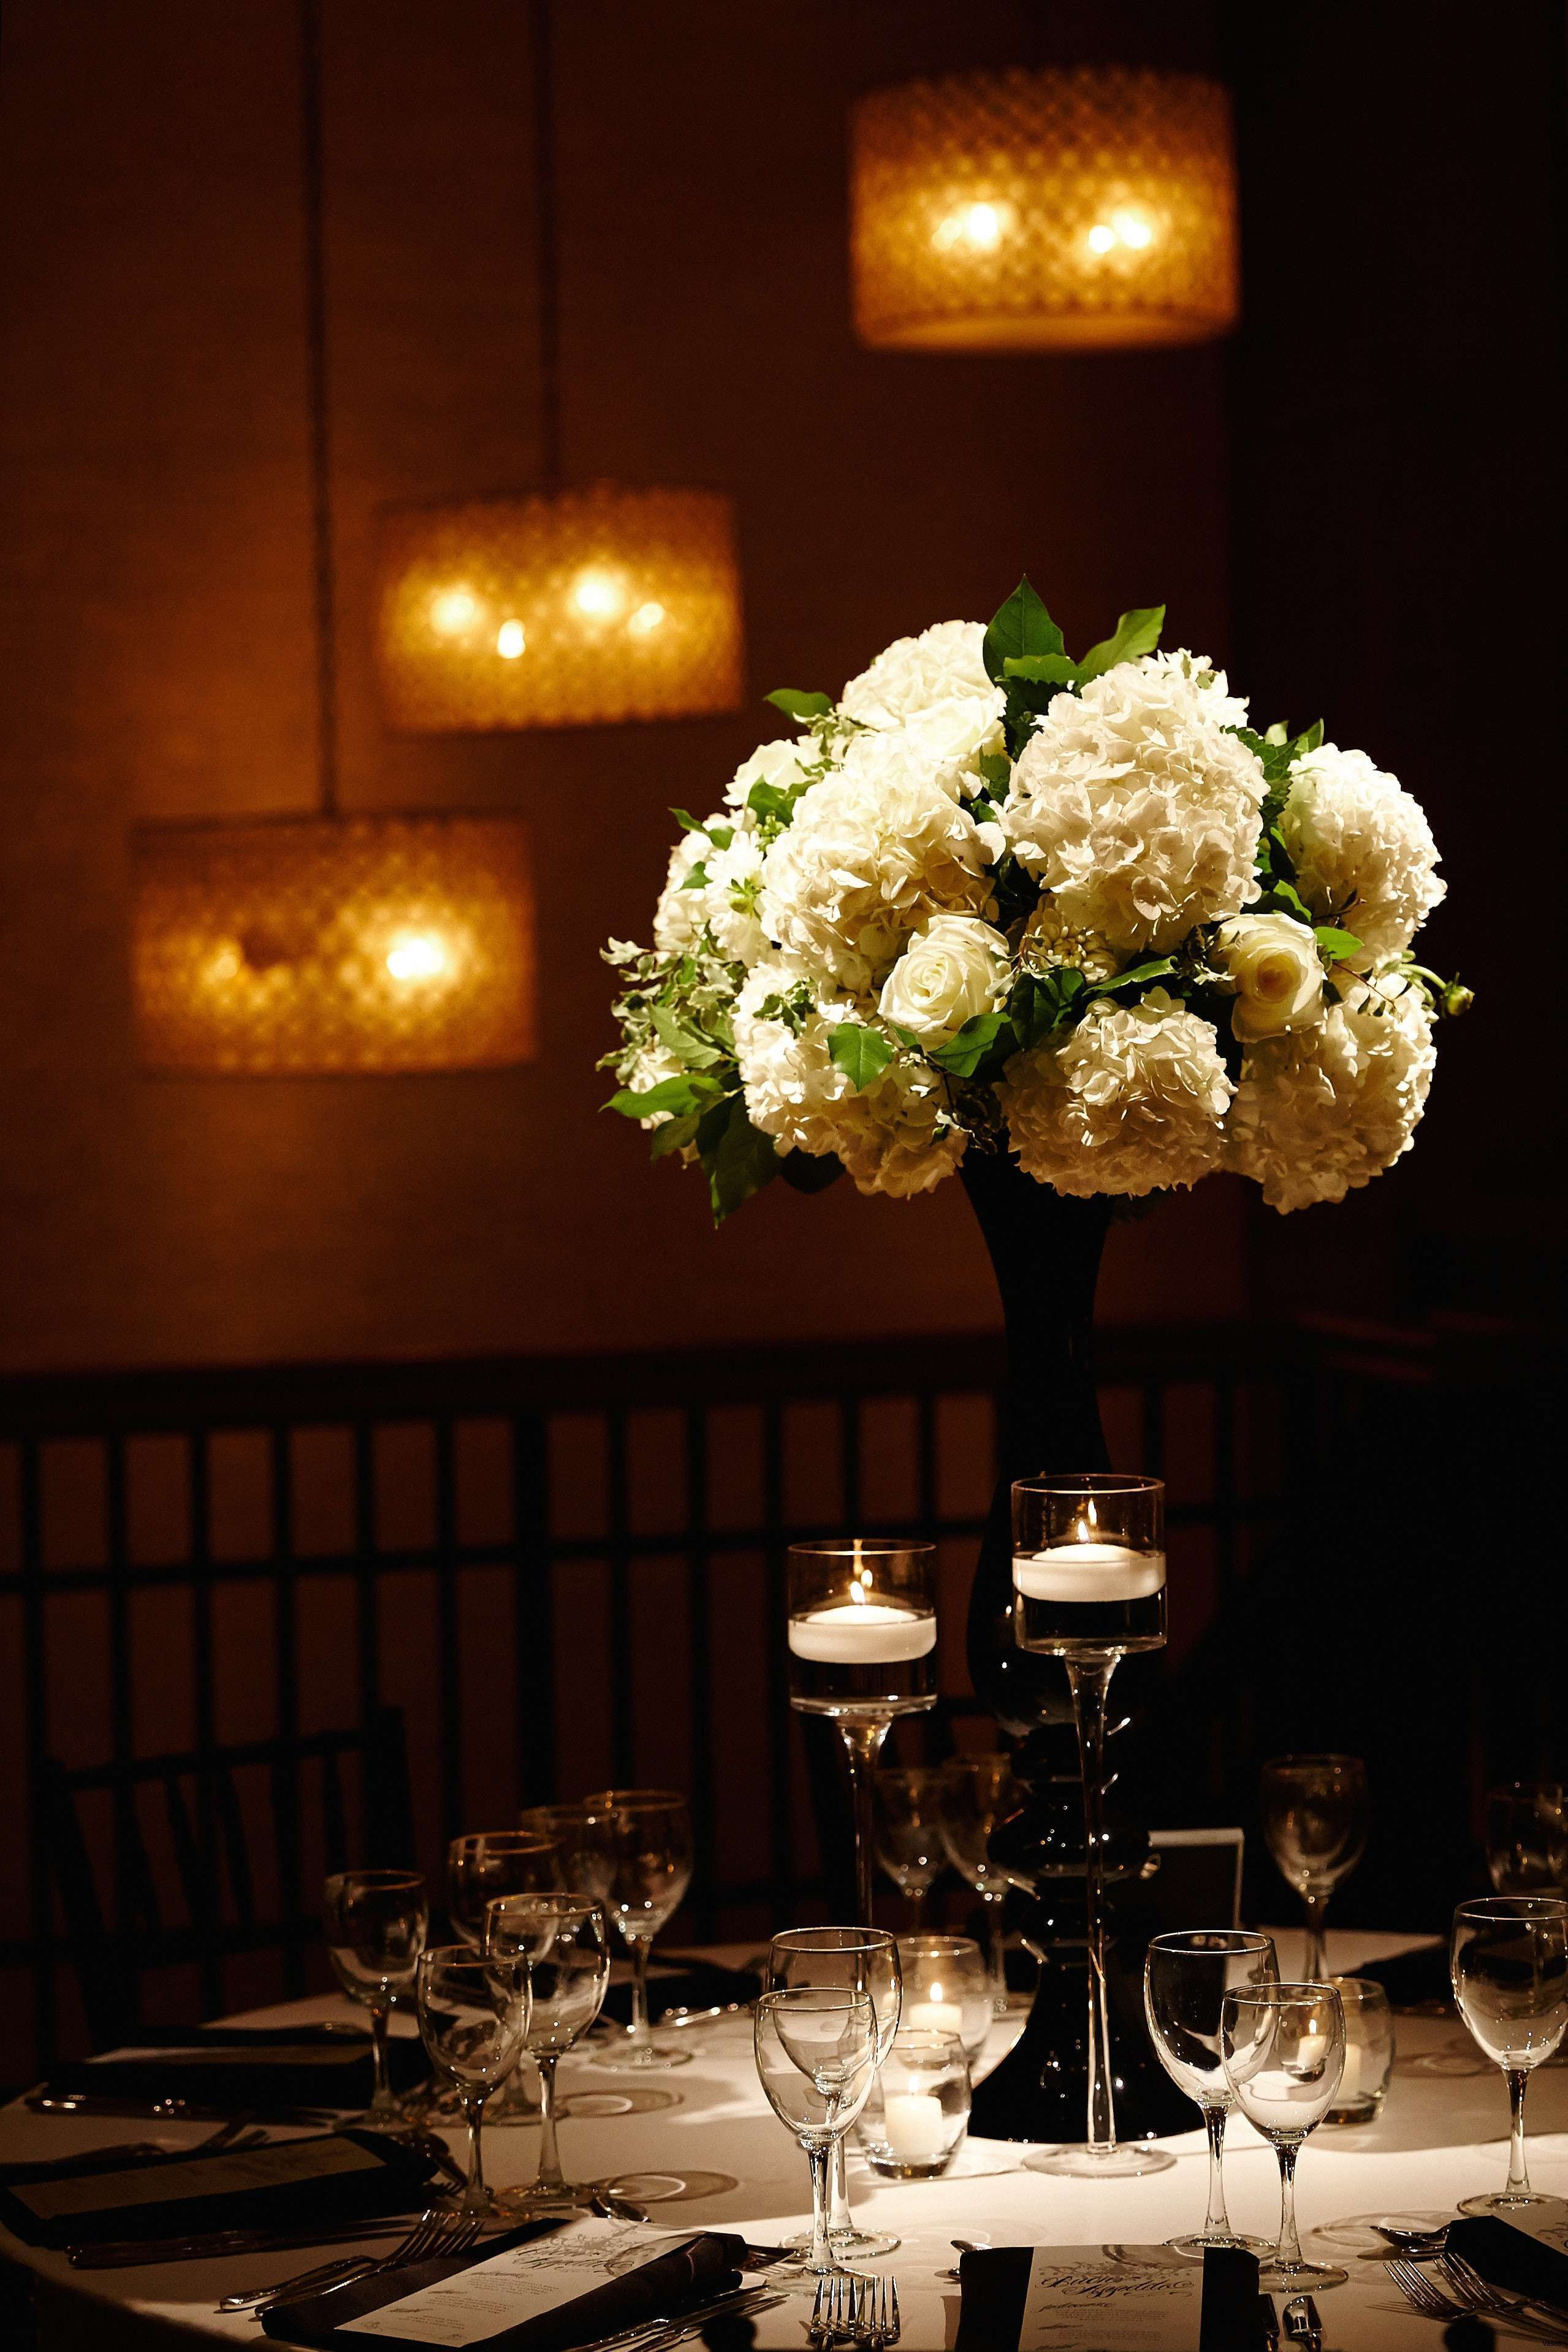 rose gold vases with flowers of gold sequin tablecloth wholesale beautiful il fullxfull h vases inside gold sequin tablecloth wholesale beautiful il fullxfull h vases black vase white flowers zoomi 0d with